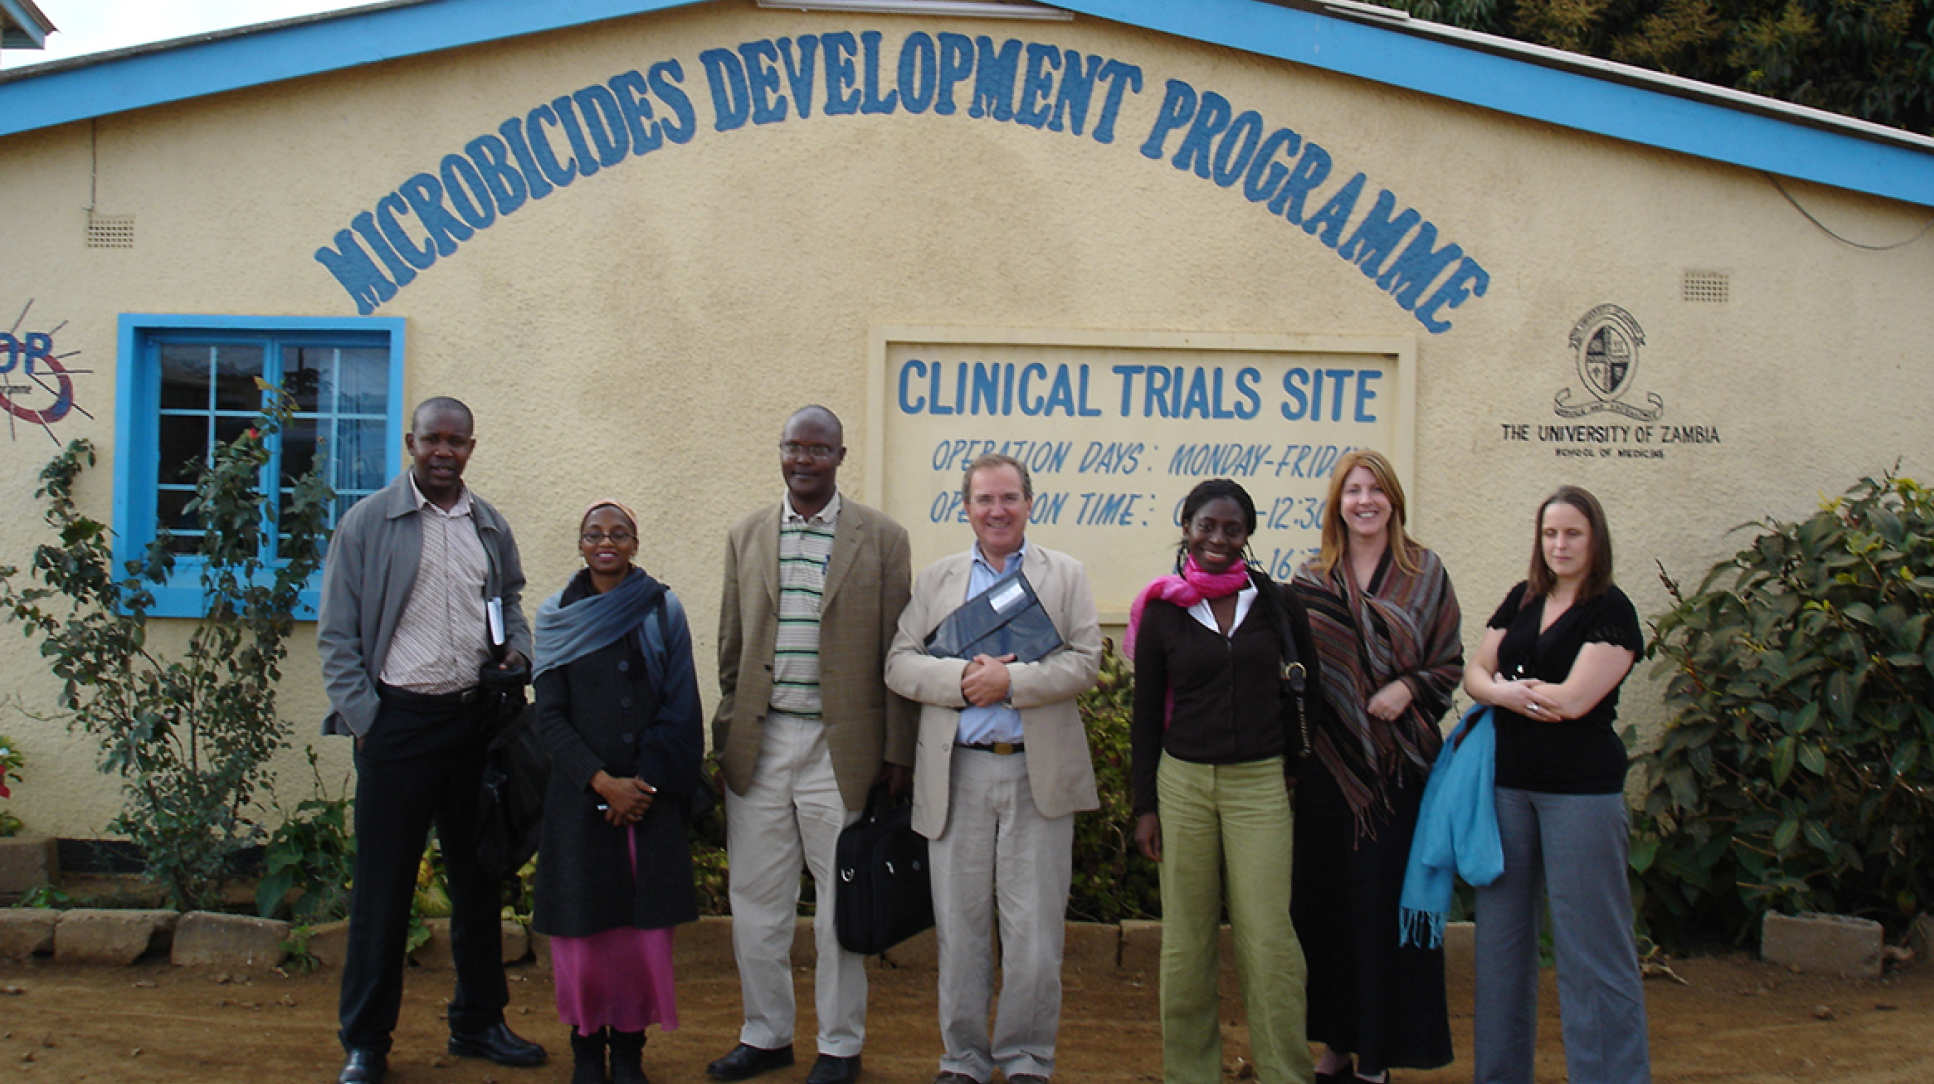 Professor Weber with colleagues at a University of Zambia clinical trials site at Mazabuka in 2006